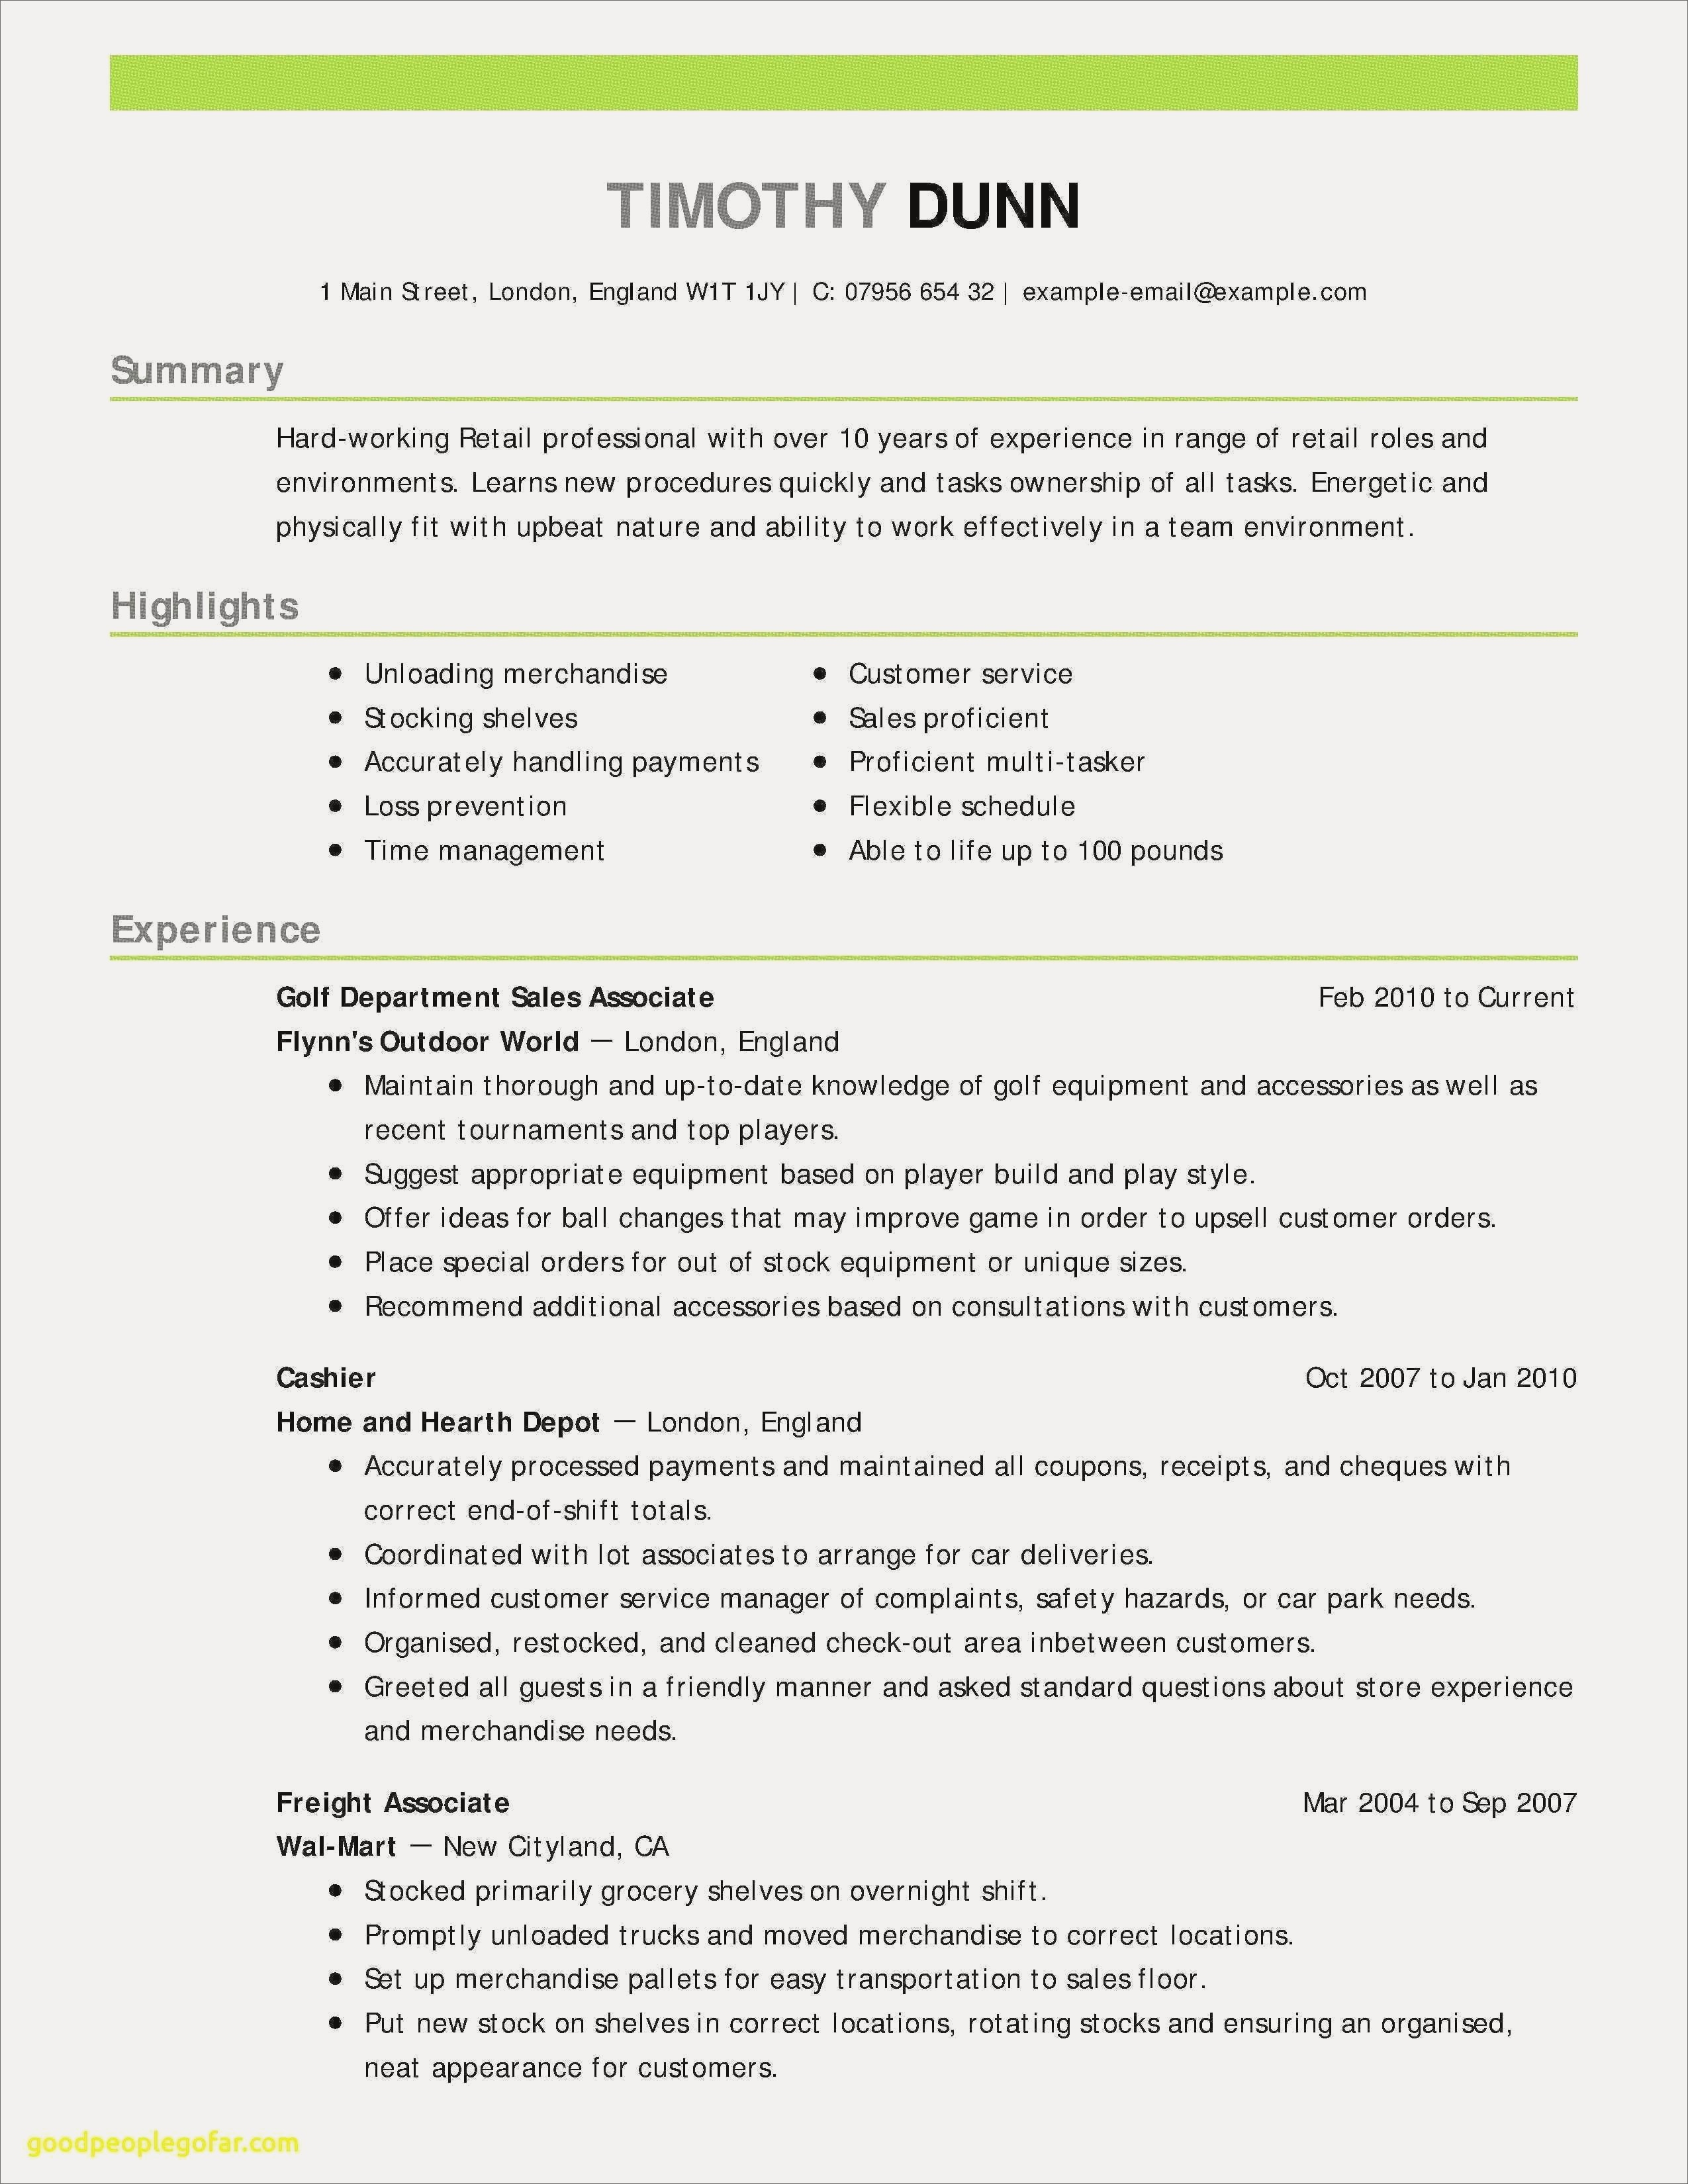 Great Skills for Resume - Resume Examples Skills and Abilities Best Customer Service Resume